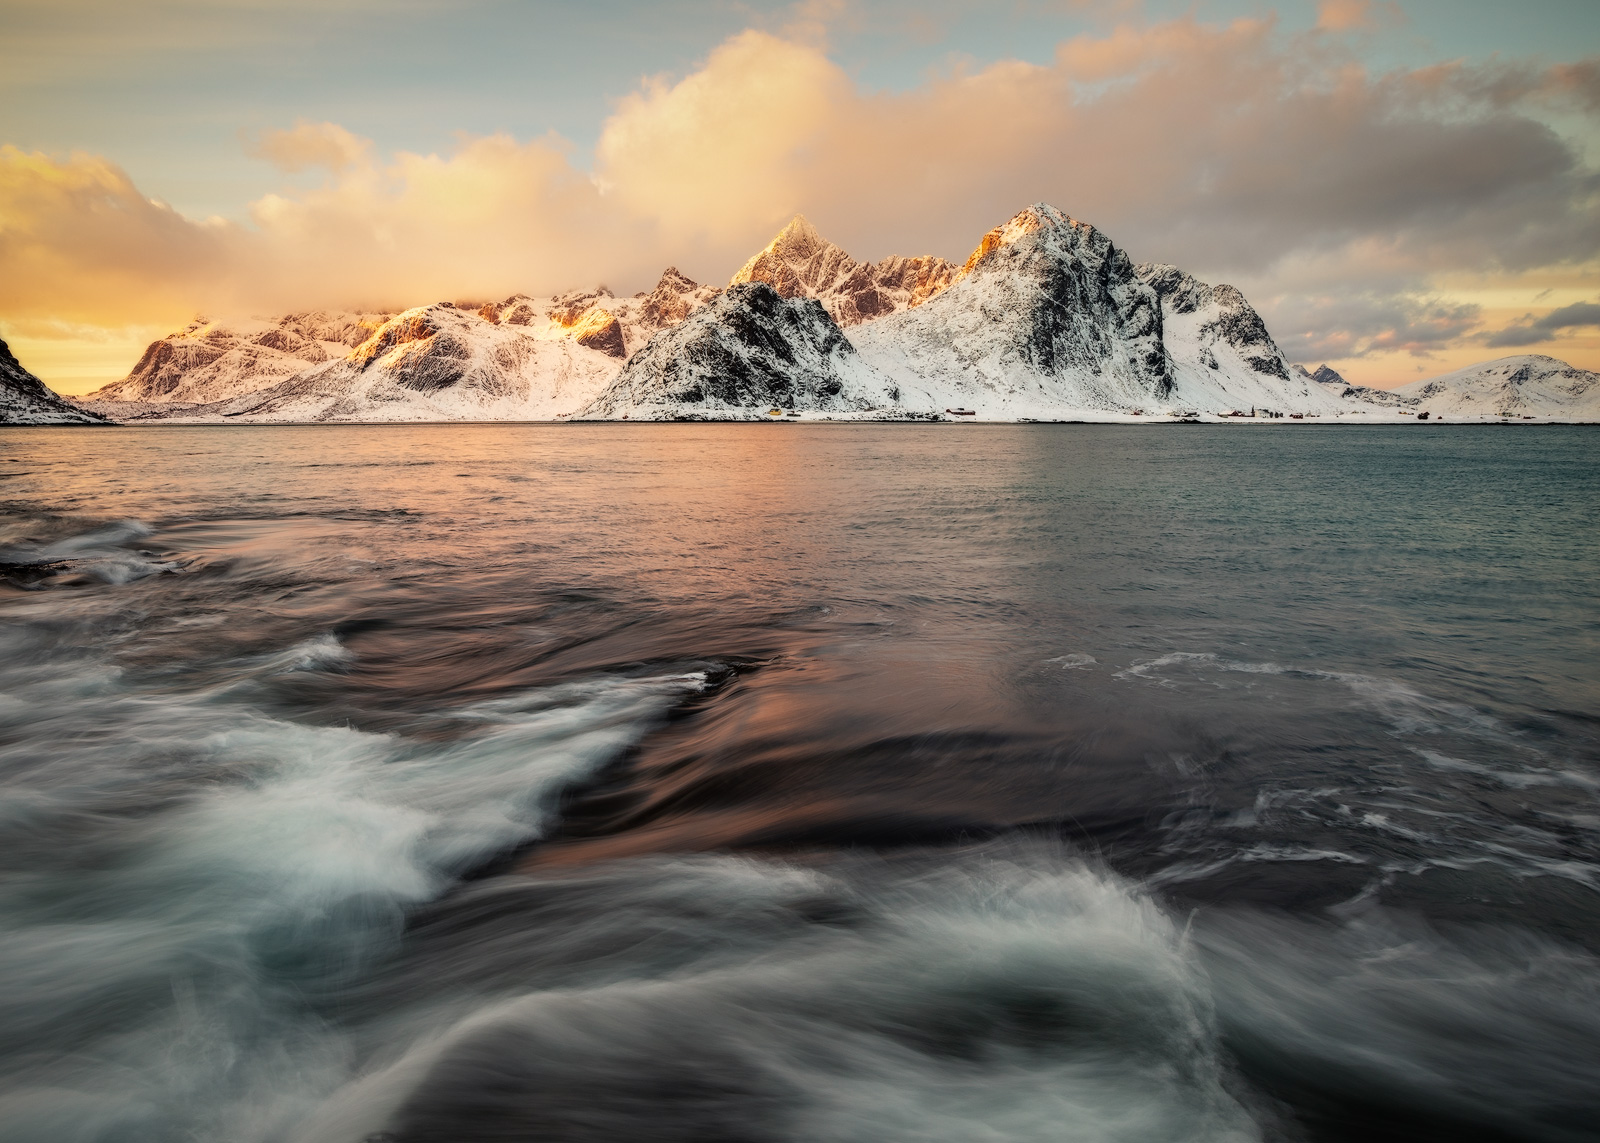 2017, beach, beautiful, coast, europe, ice, lake, landscape, lofoten, majestic, morning, mountain, mountain range, norway, peak, scandinavia, scenic, seascape, snow, snowy, sunrise, vareid, vestvågøy, photo